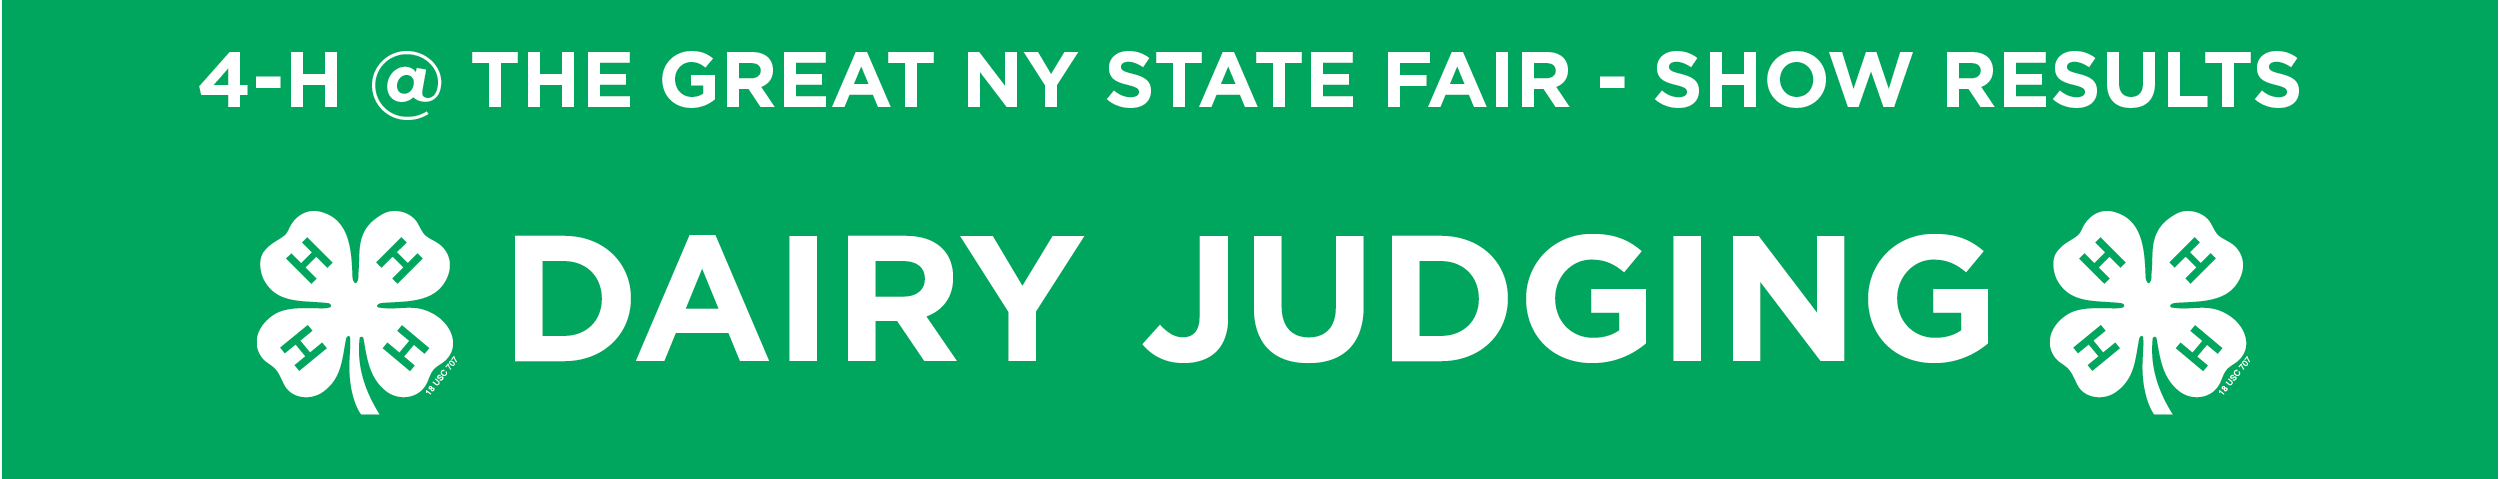 4-H Show Results Banner - Dairy Judging.png